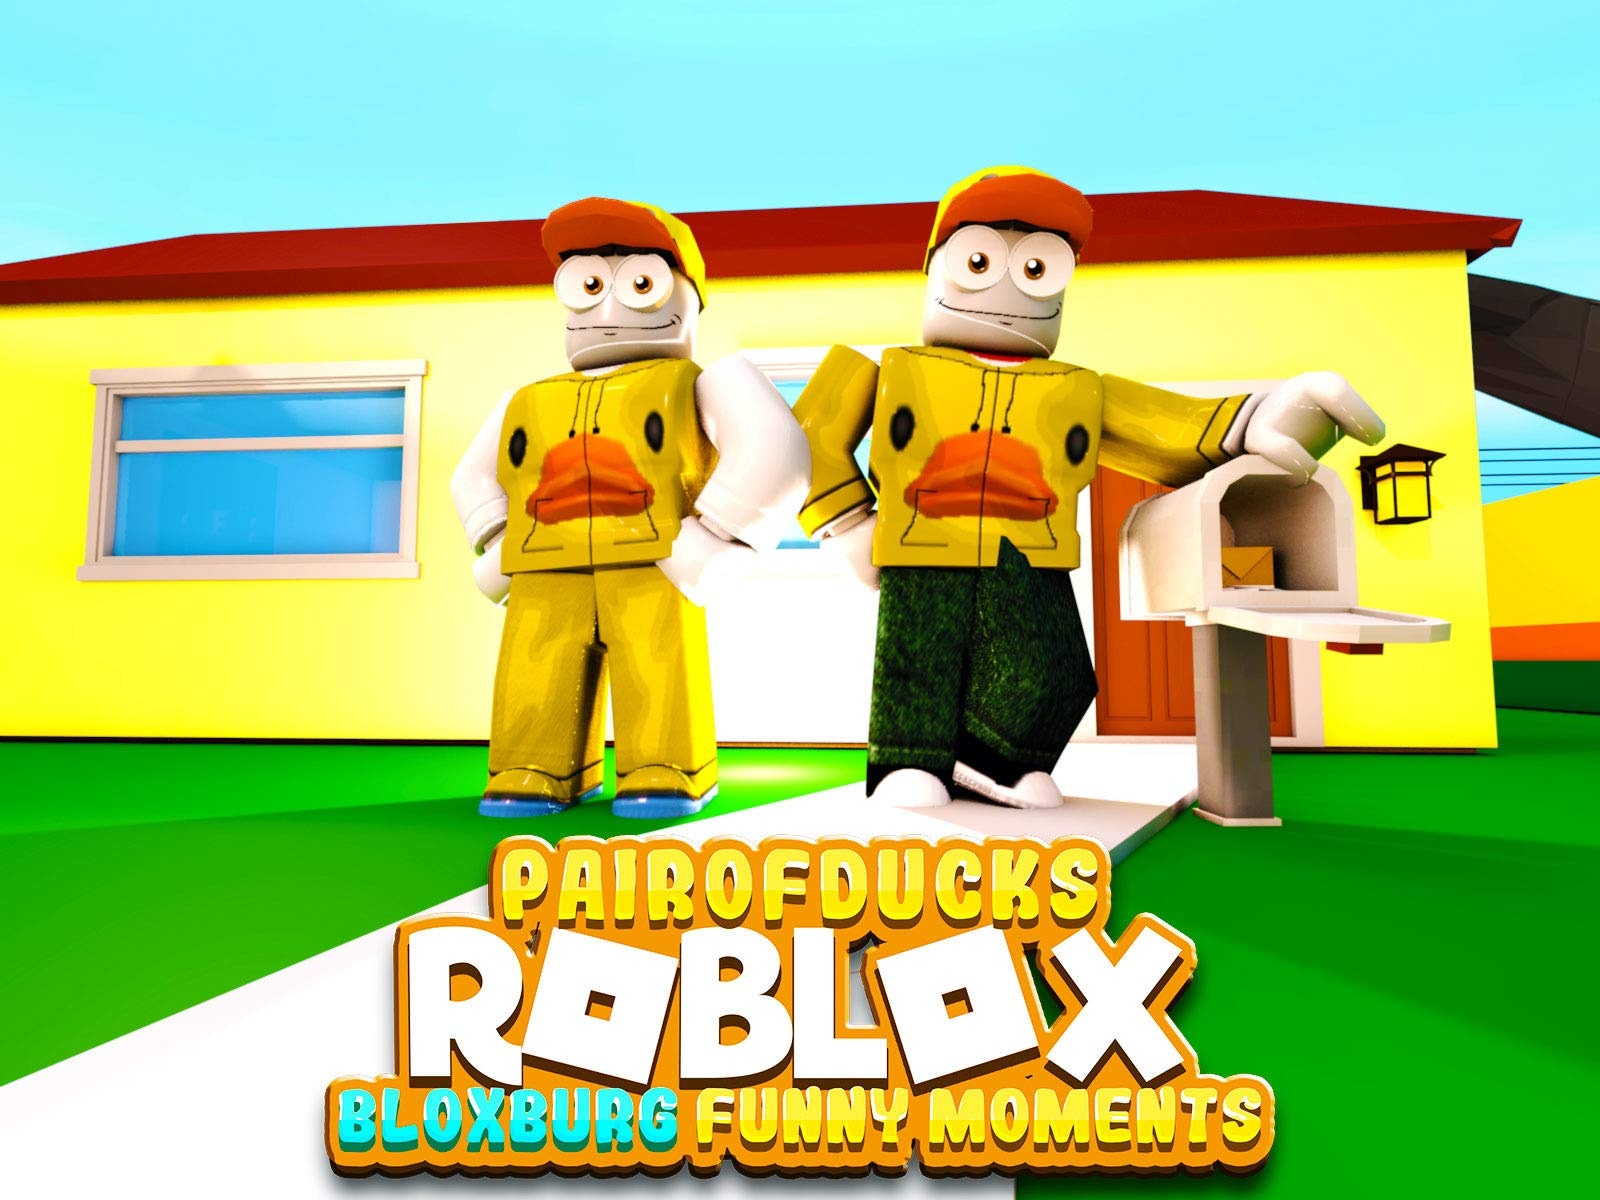 Games Like Bloxburg On Roblox But Free Watch Clip Roblox Bloxburg Adventures Funny Moments Prime Video